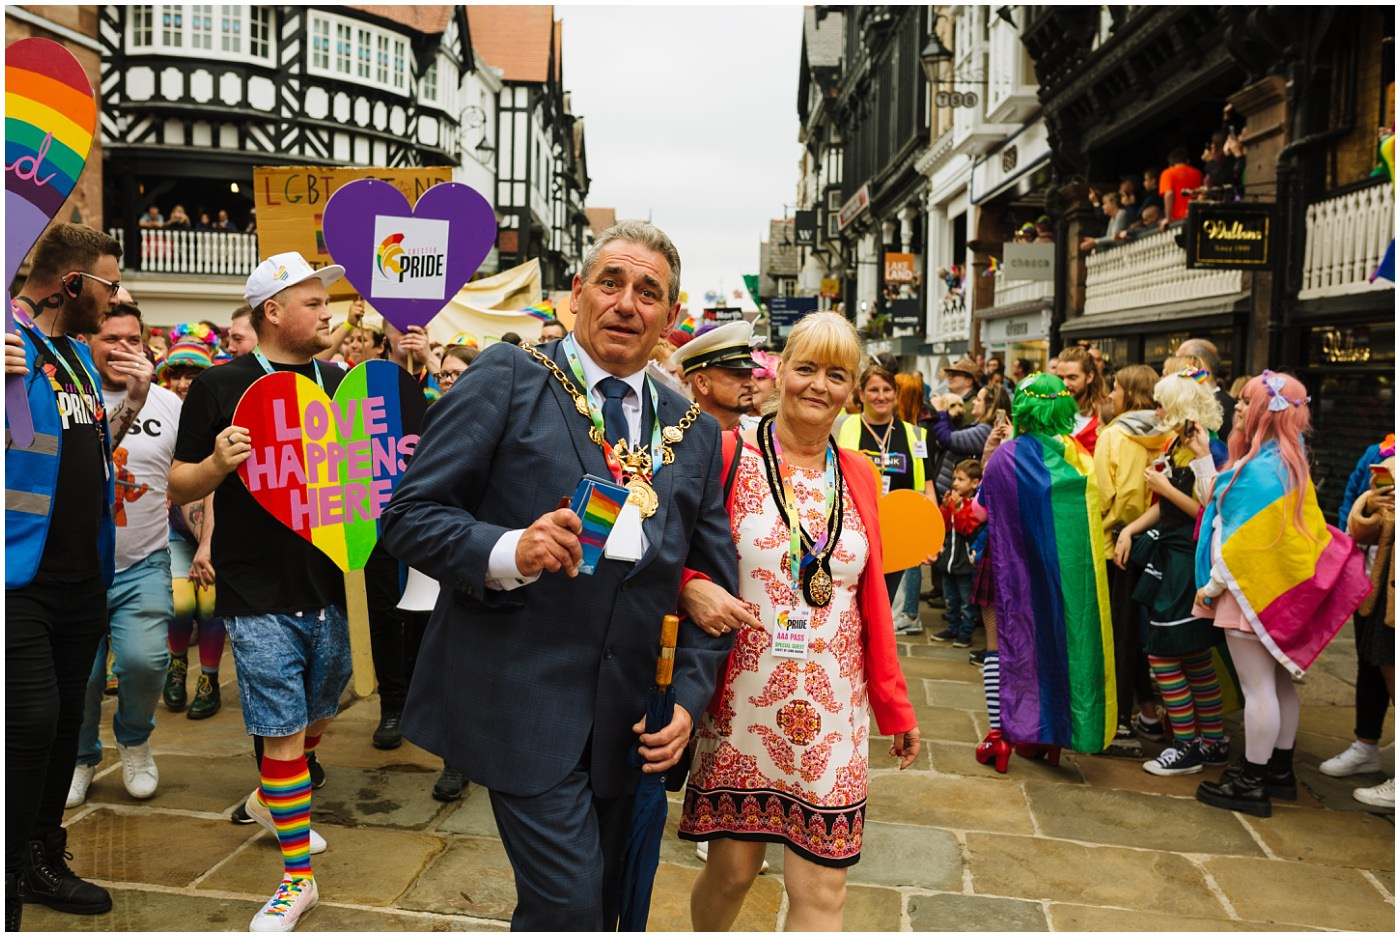 Mayor of Chester celebrates Pride 2019 and joins in the parade